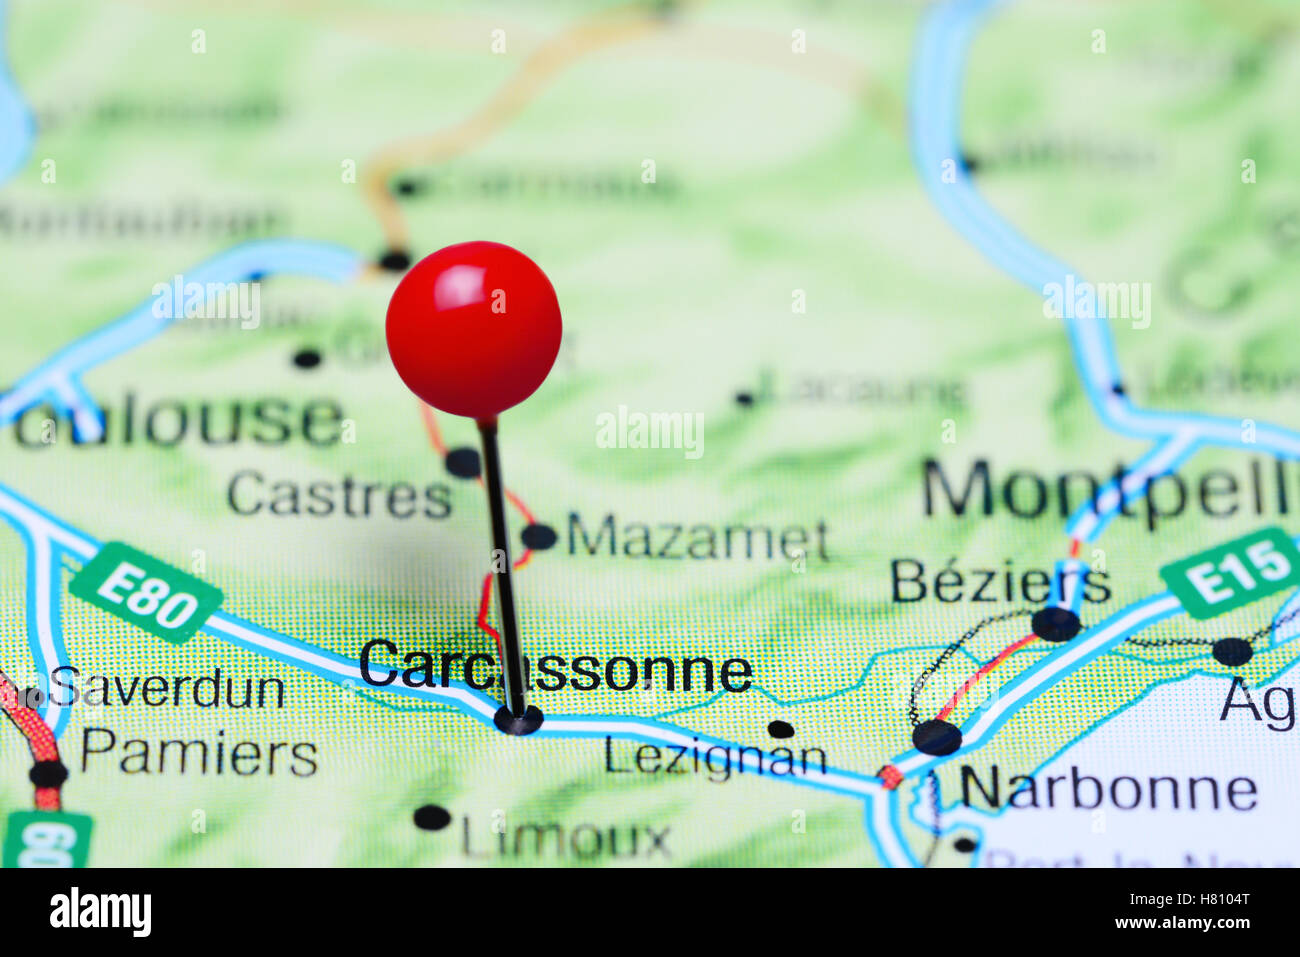 Map Of France Carcassonne.Carcassonne Pinned On A Map Of France Stock Photo 125411912 Alamy